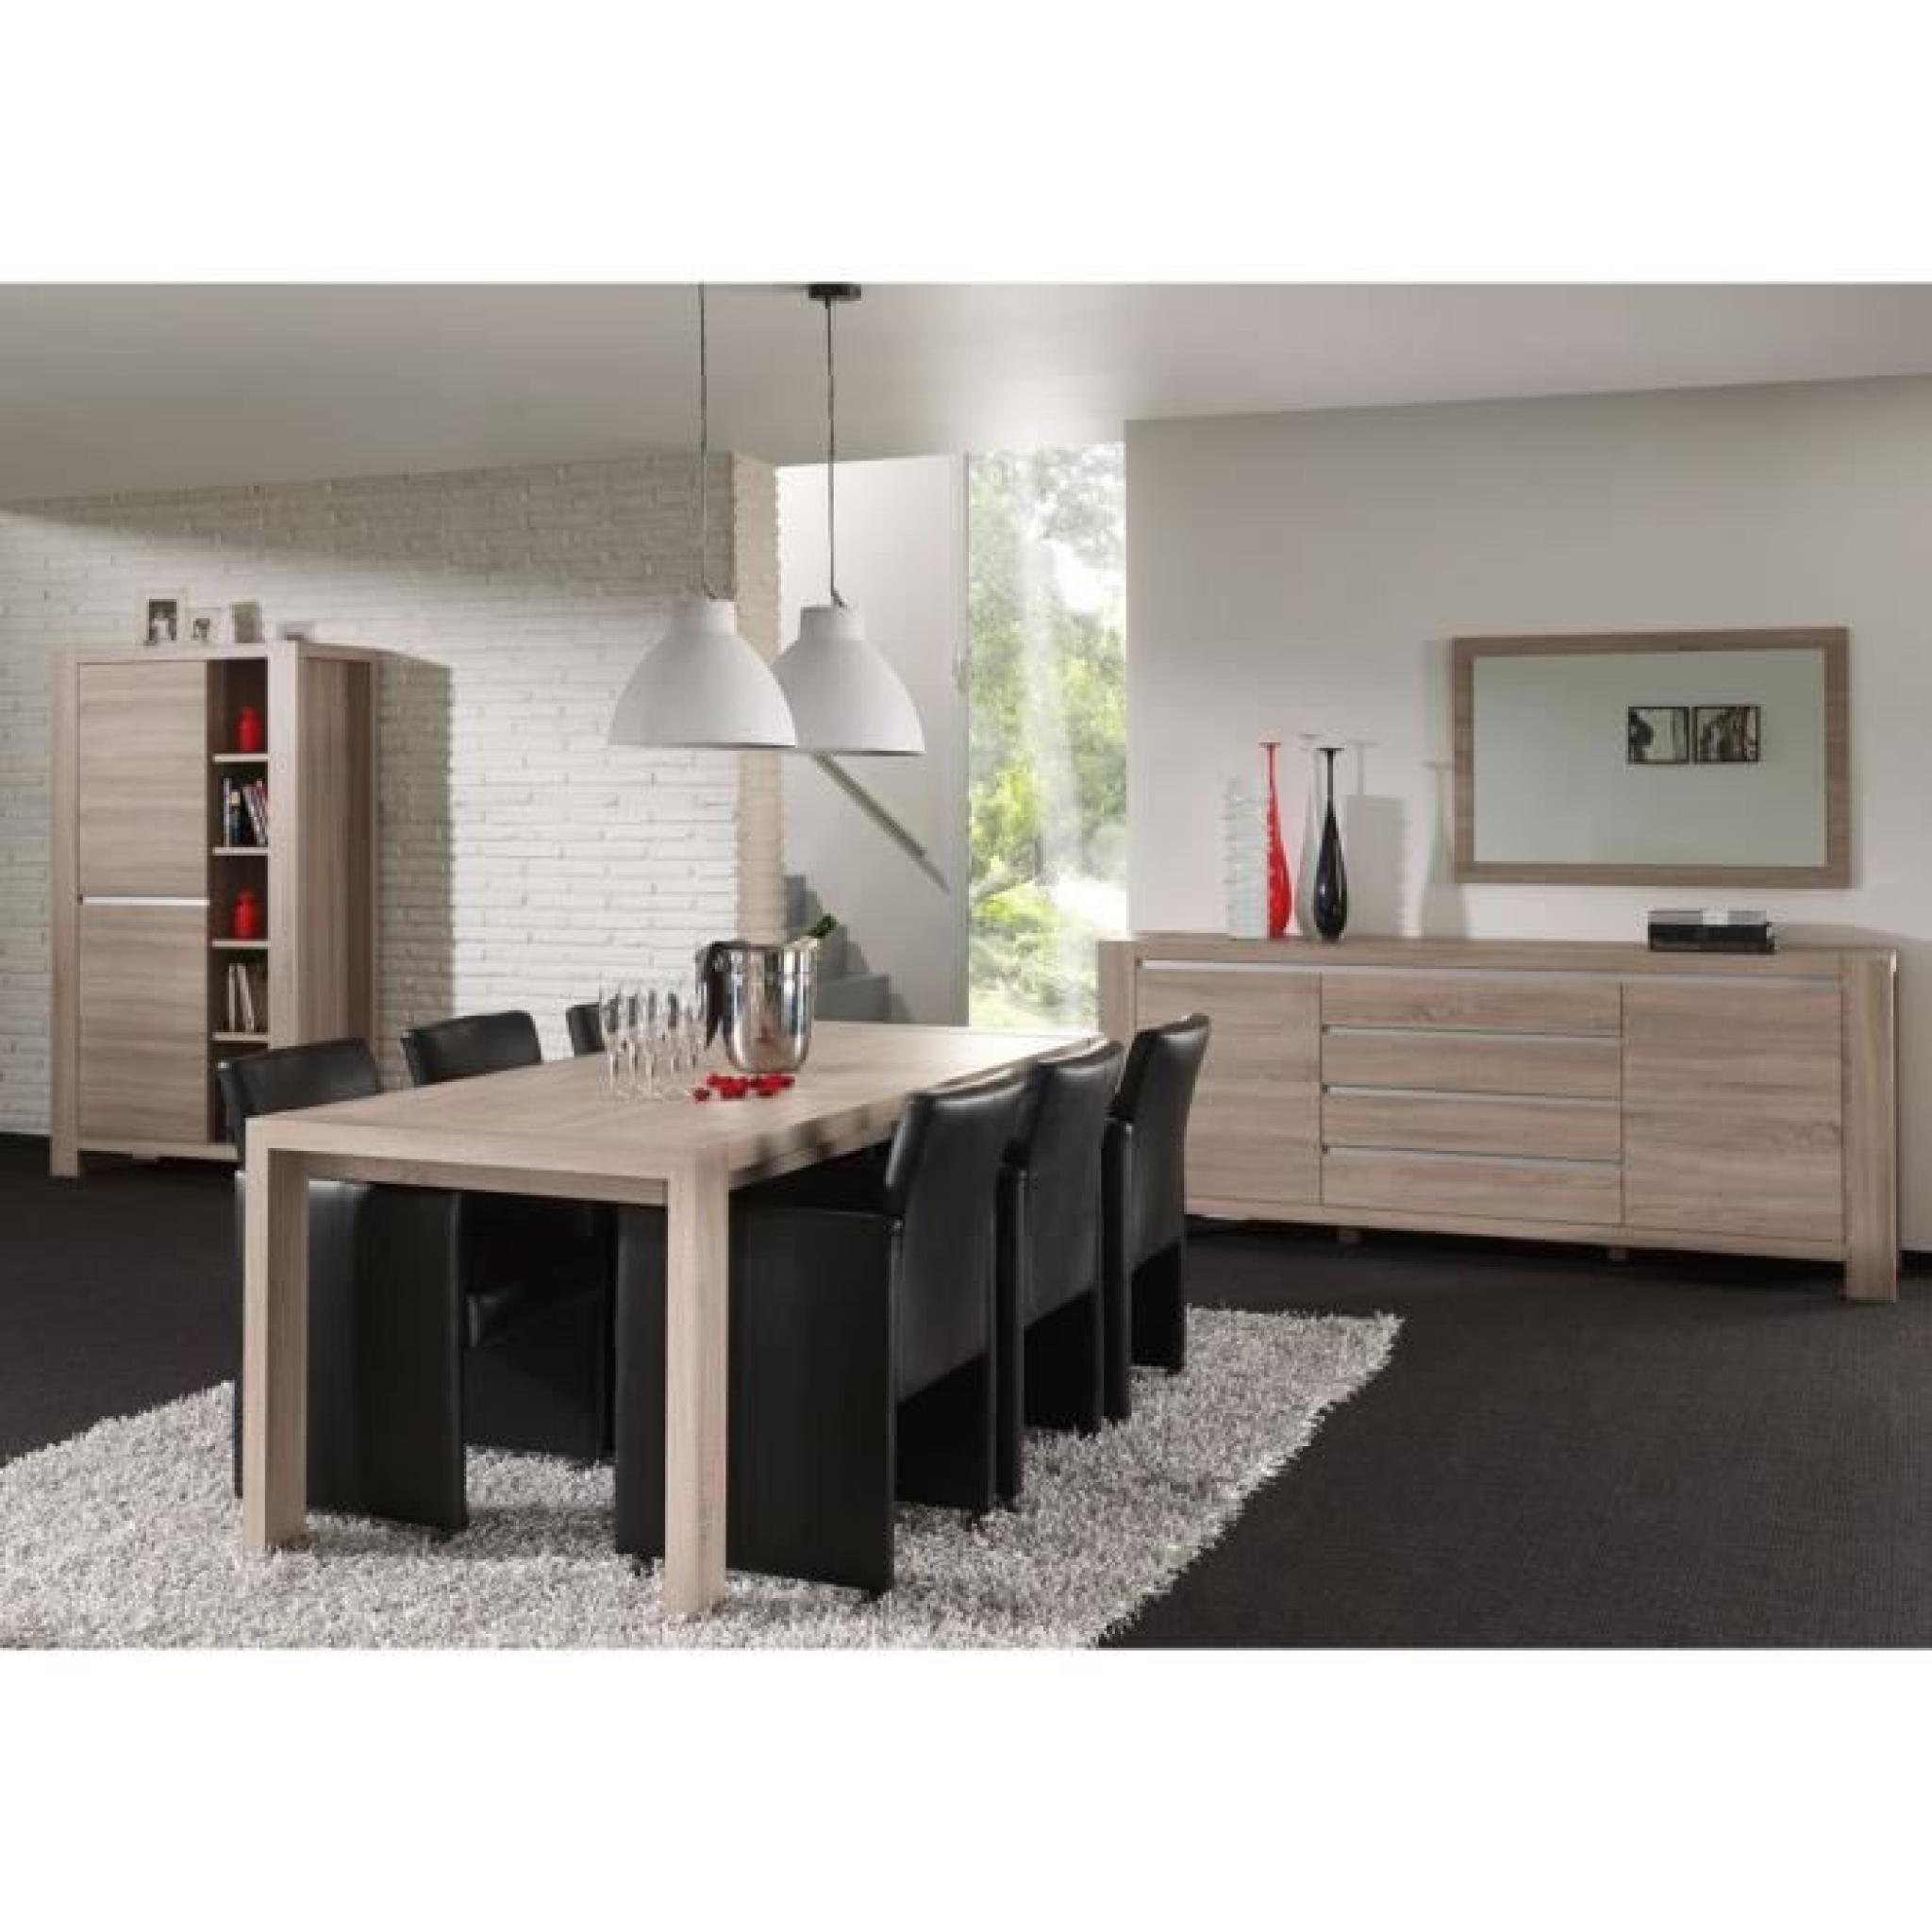 bahut salle a manger pas cher maison design. Black Bedroom Furniture Sets. Home Design Ideas